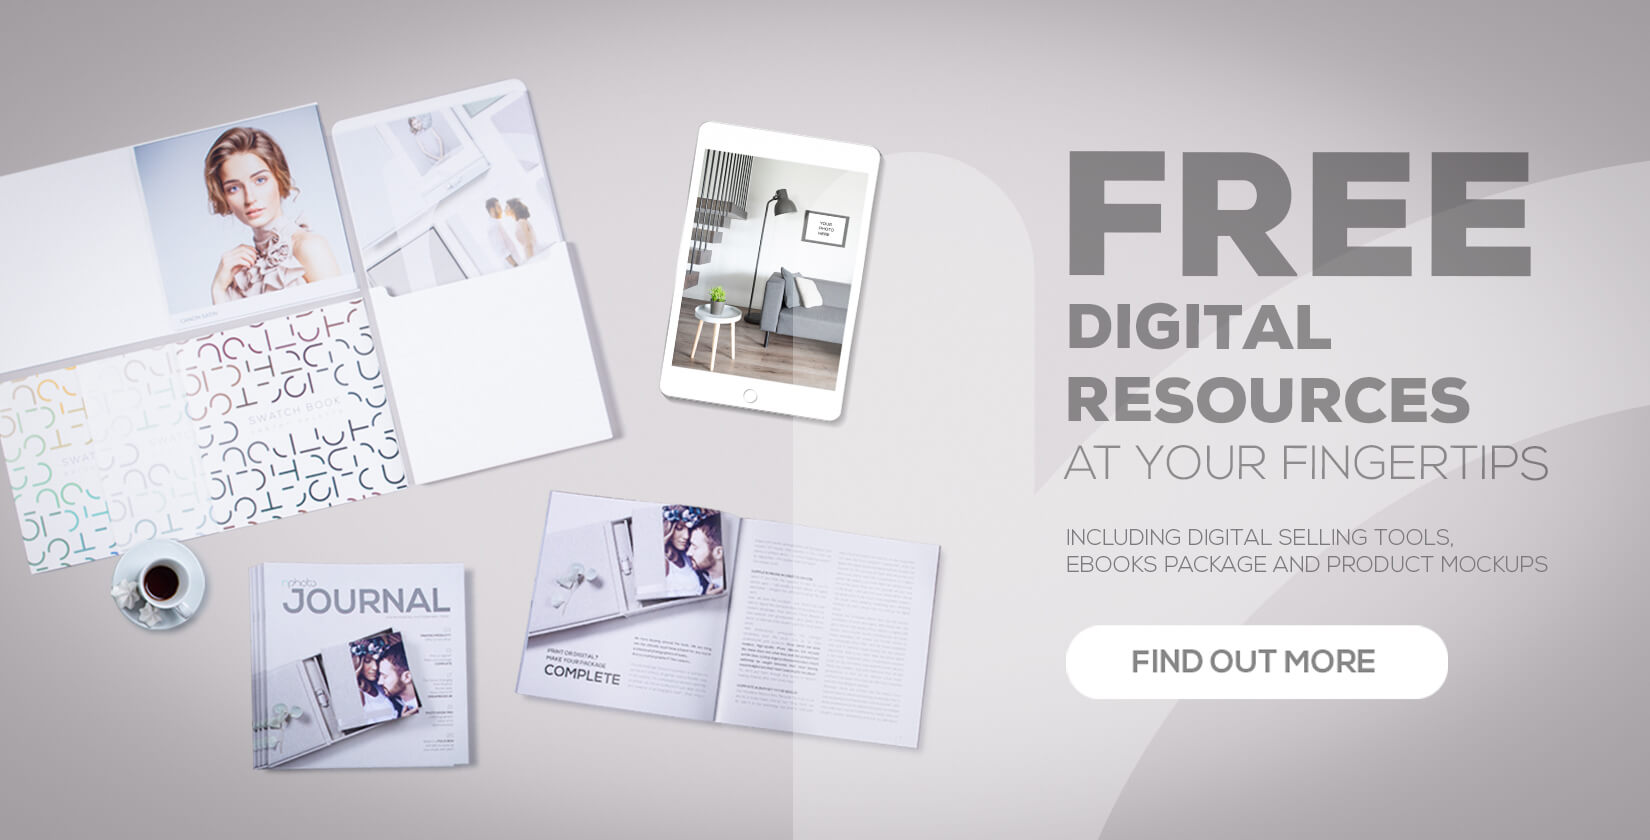 Free Digital Resources for Photographers